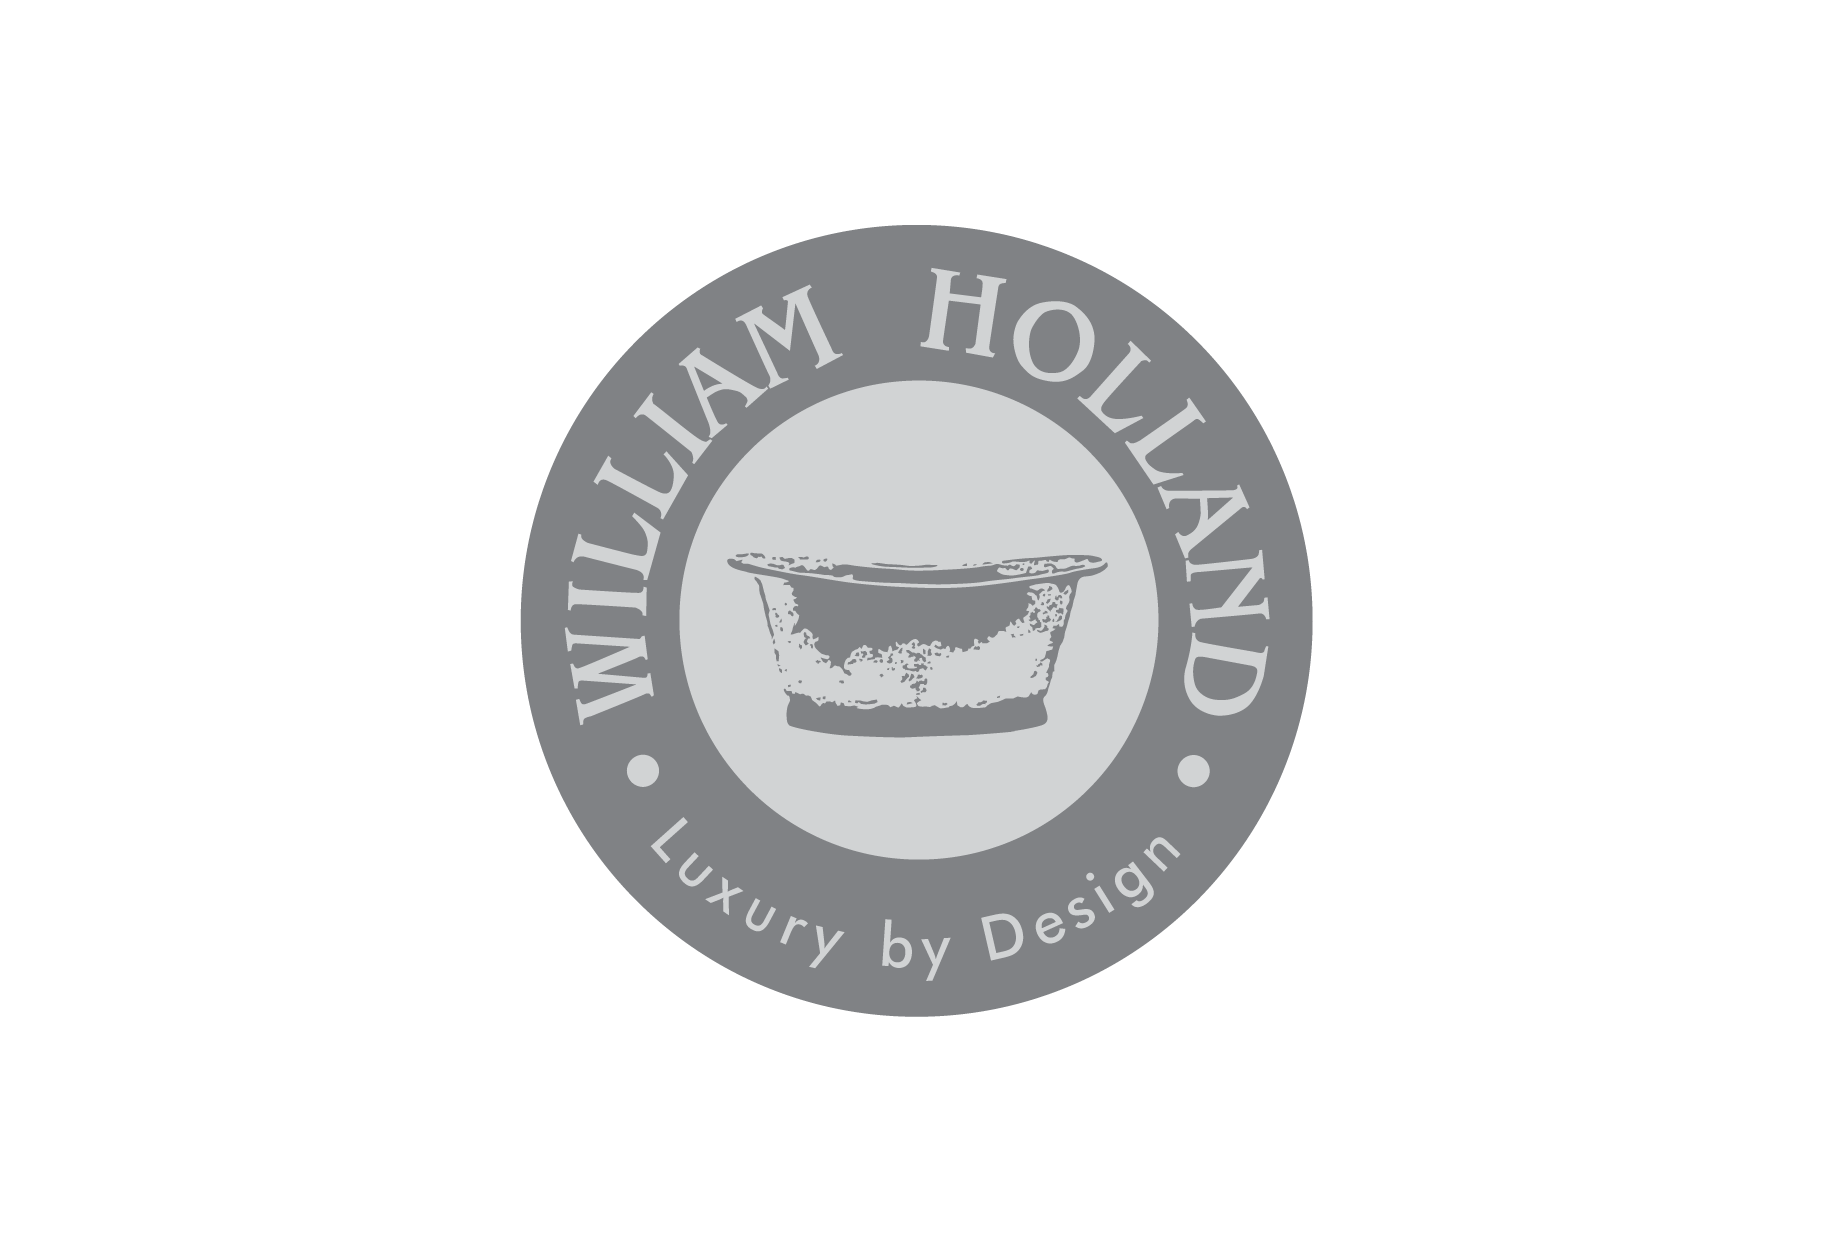 Logo WILLIAM HOLLAND Frame New